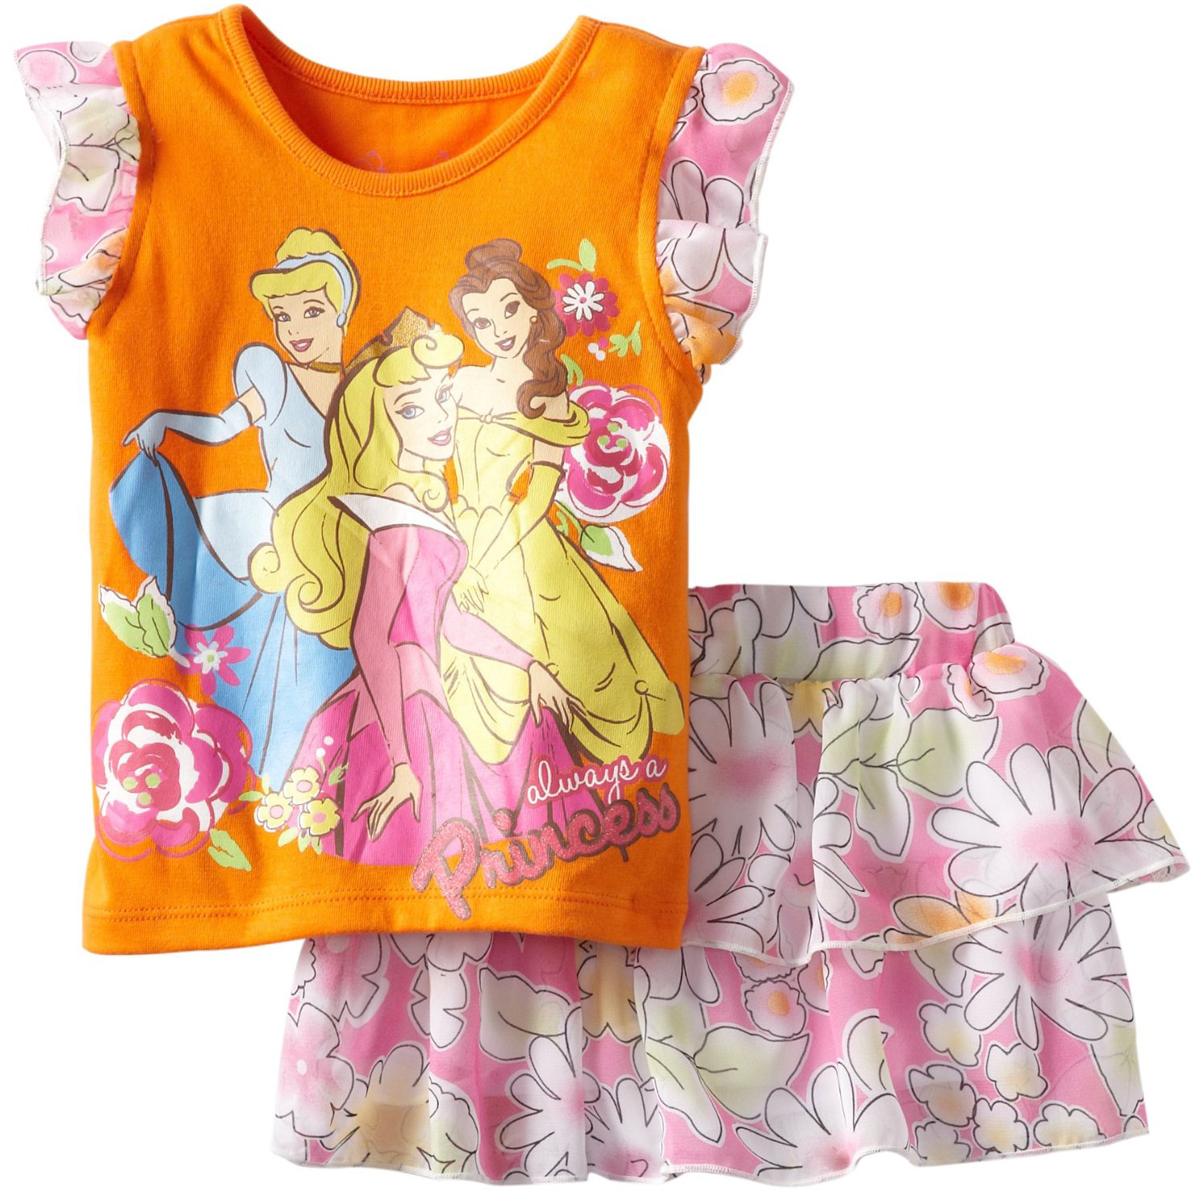 Disney Princess Little Girls' 2 Piece Orange Top Pink Floral Print Scooter Set at Sears.com